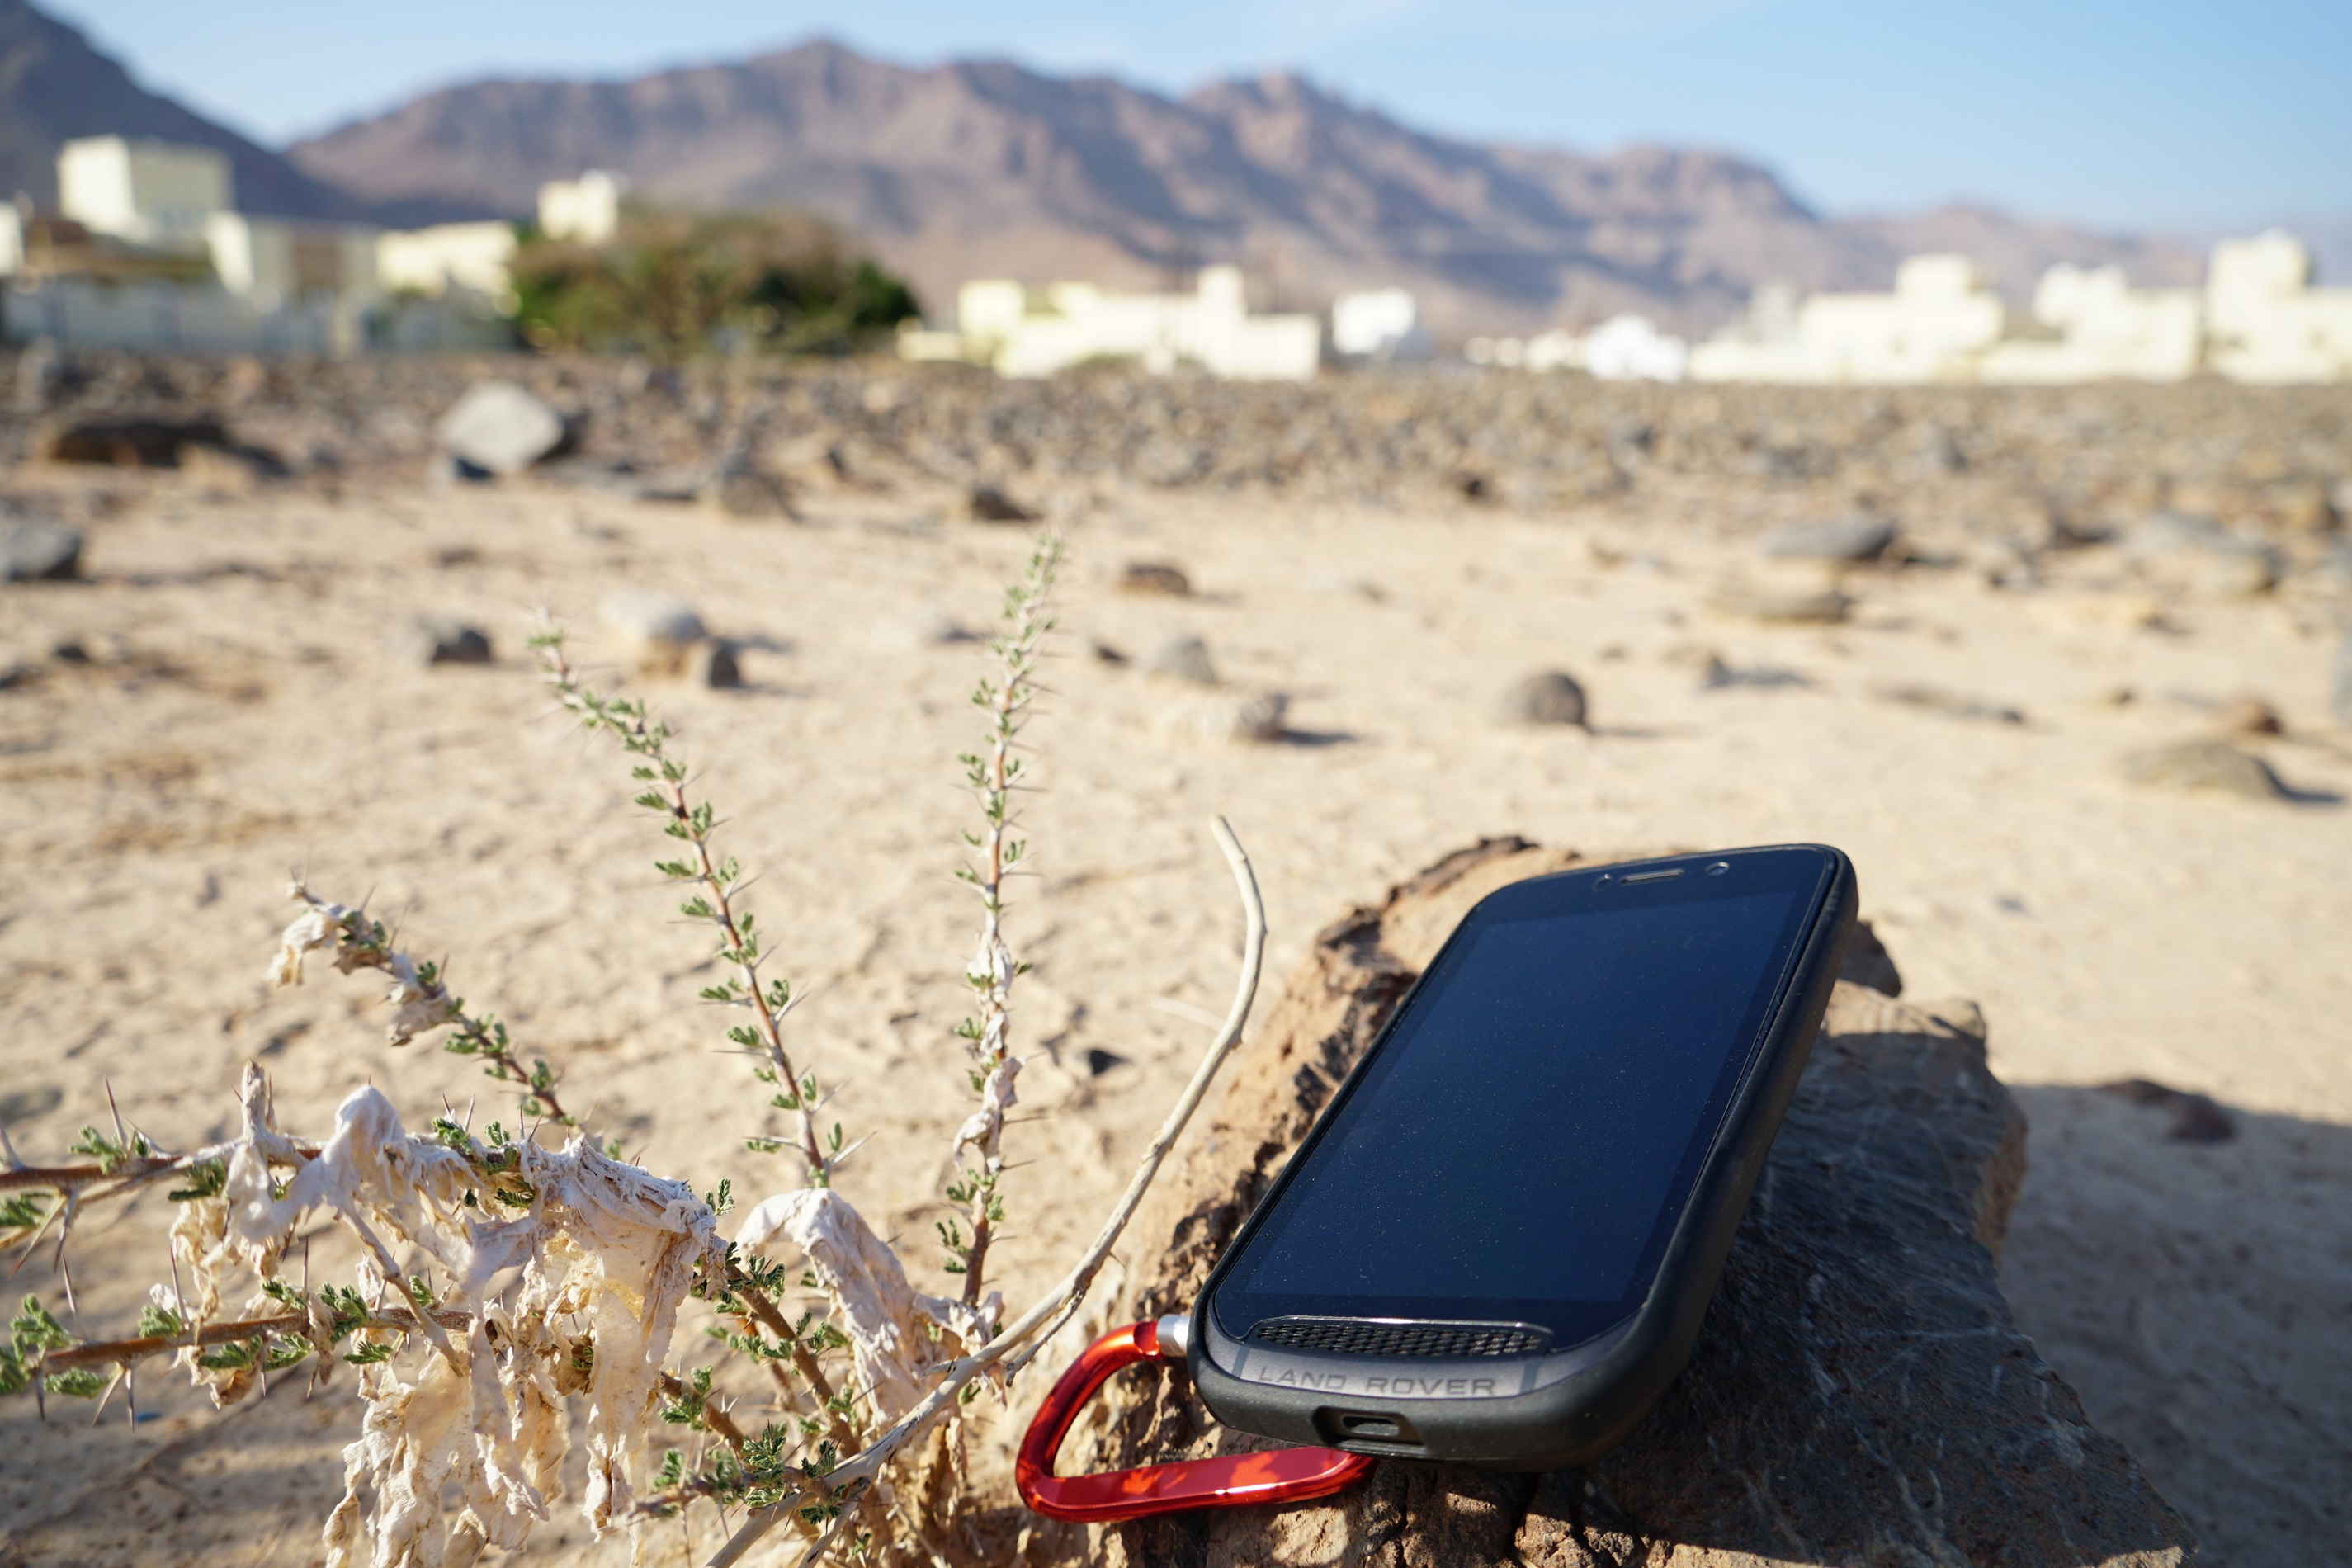 The Explore phone in the hot Oman sunshine | Land Rover Explore